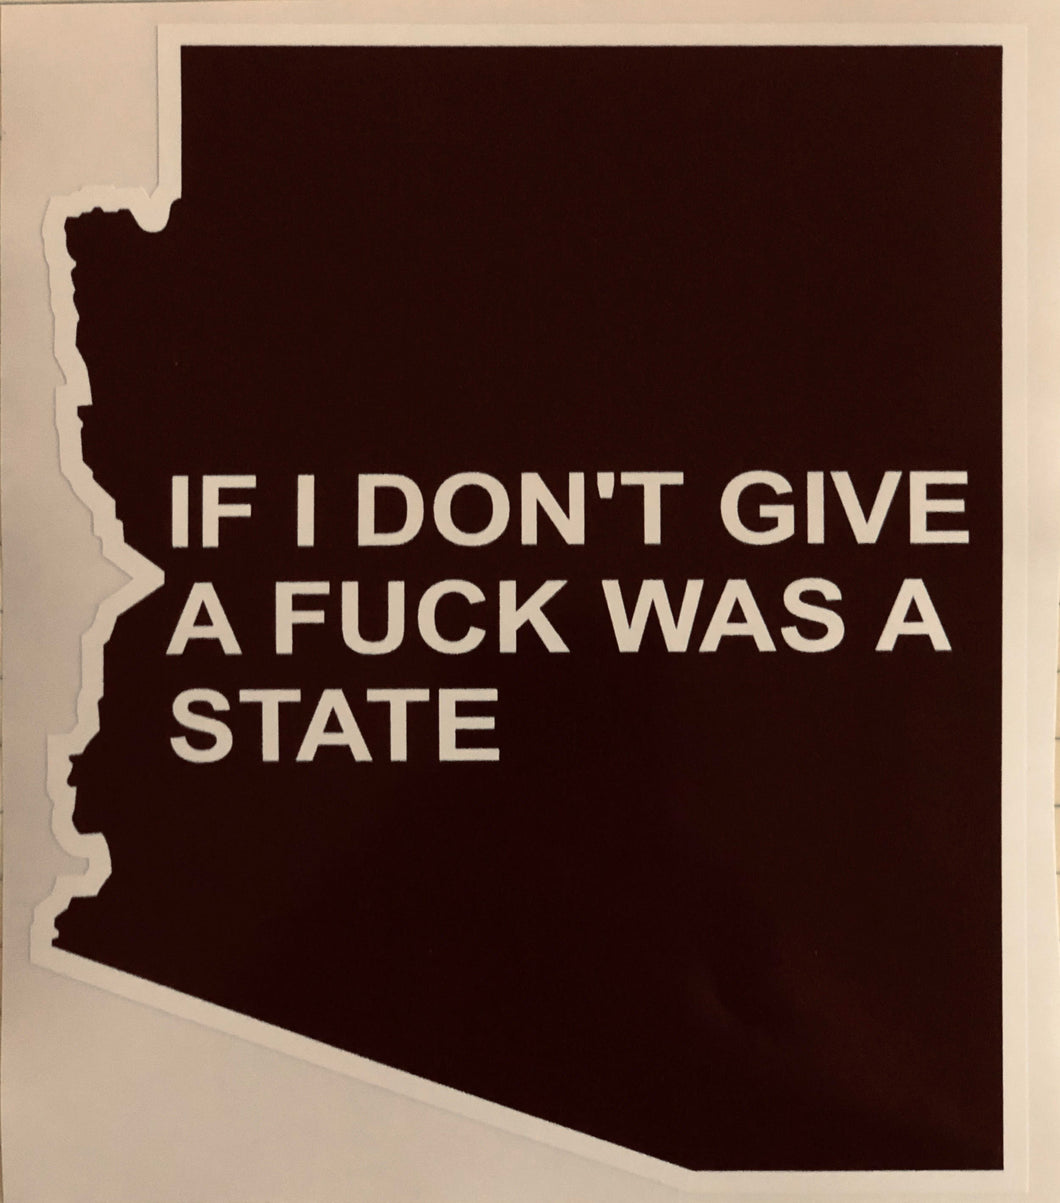 If I don't give a F@!& was a state (Arizona) decal